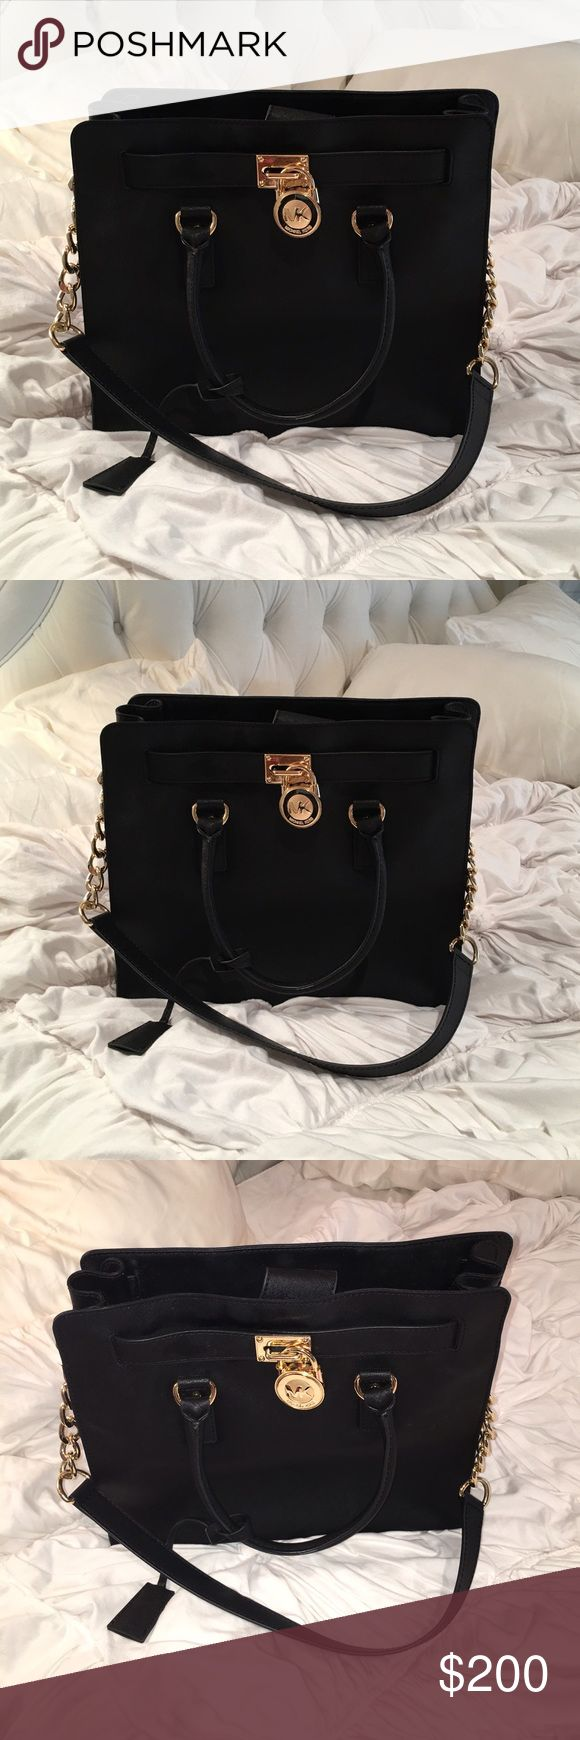 MICHAEL KORS black bag!!! MICHAEL KORS black bag!!! Used just a handful of times - great condition!!🚨 Will lower price 10% so you get free shipping too. 🚨 KORS Michael Kors Bags Totes